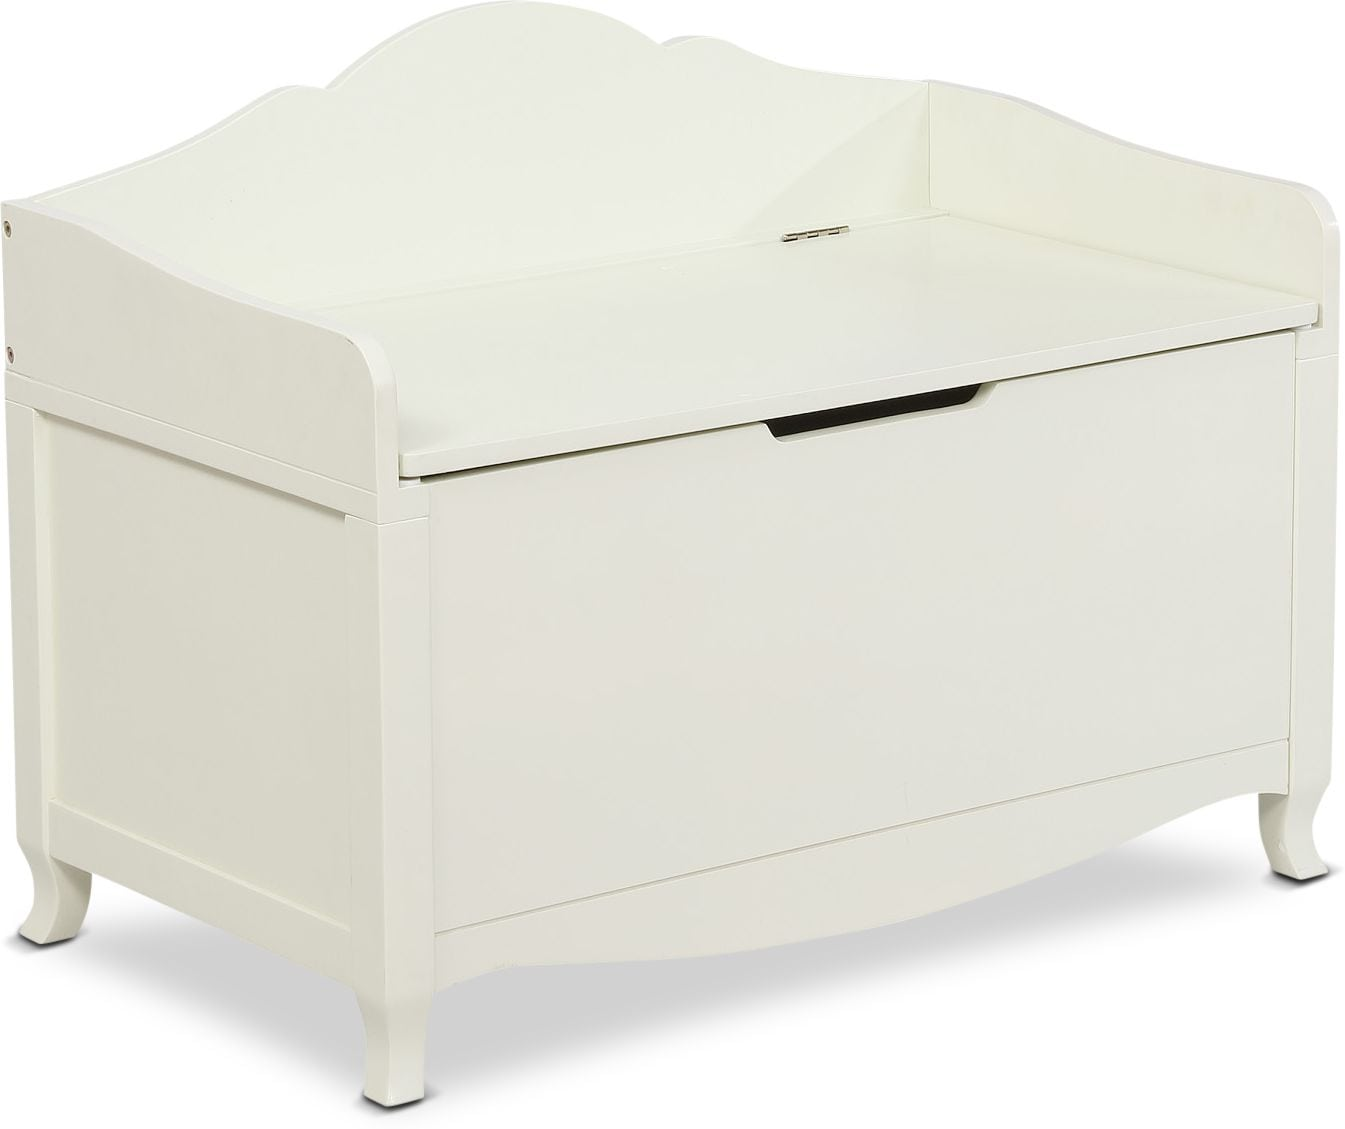 Kids Furniture - Kendall Youth Storage Chest - White